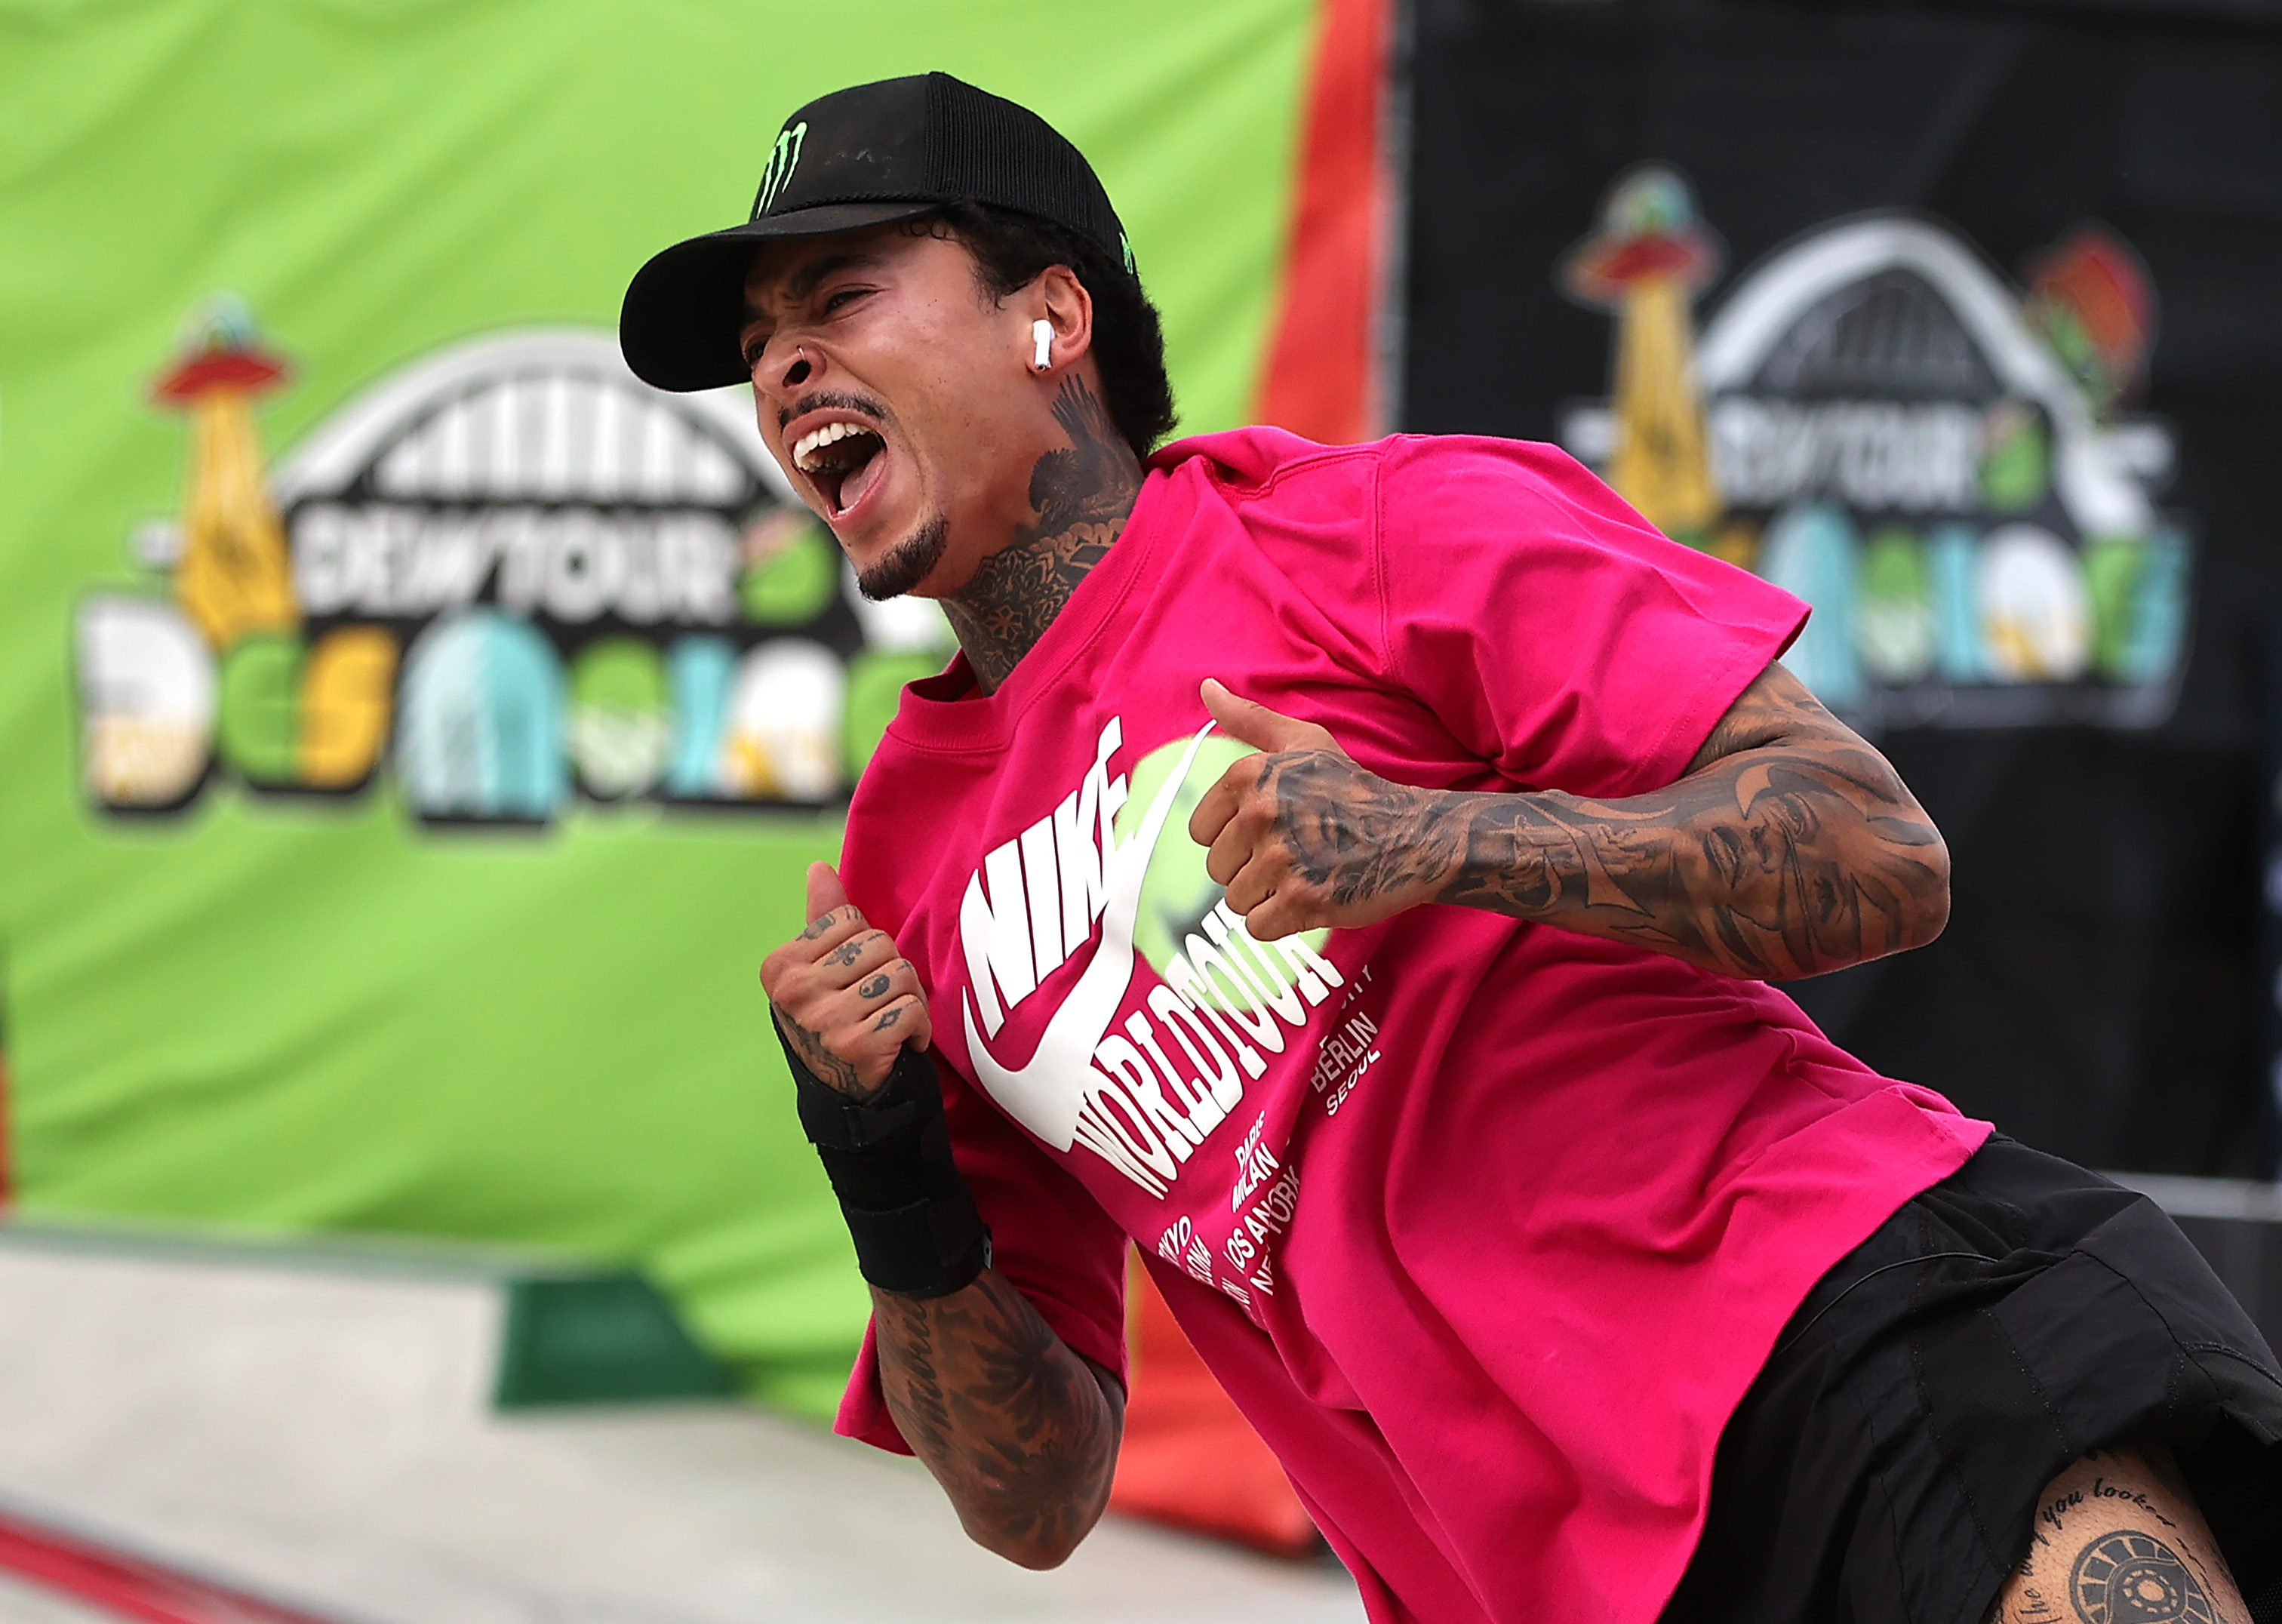 Nyjah Huston on Olympic Skateboarding Debut, Success at an Early Age